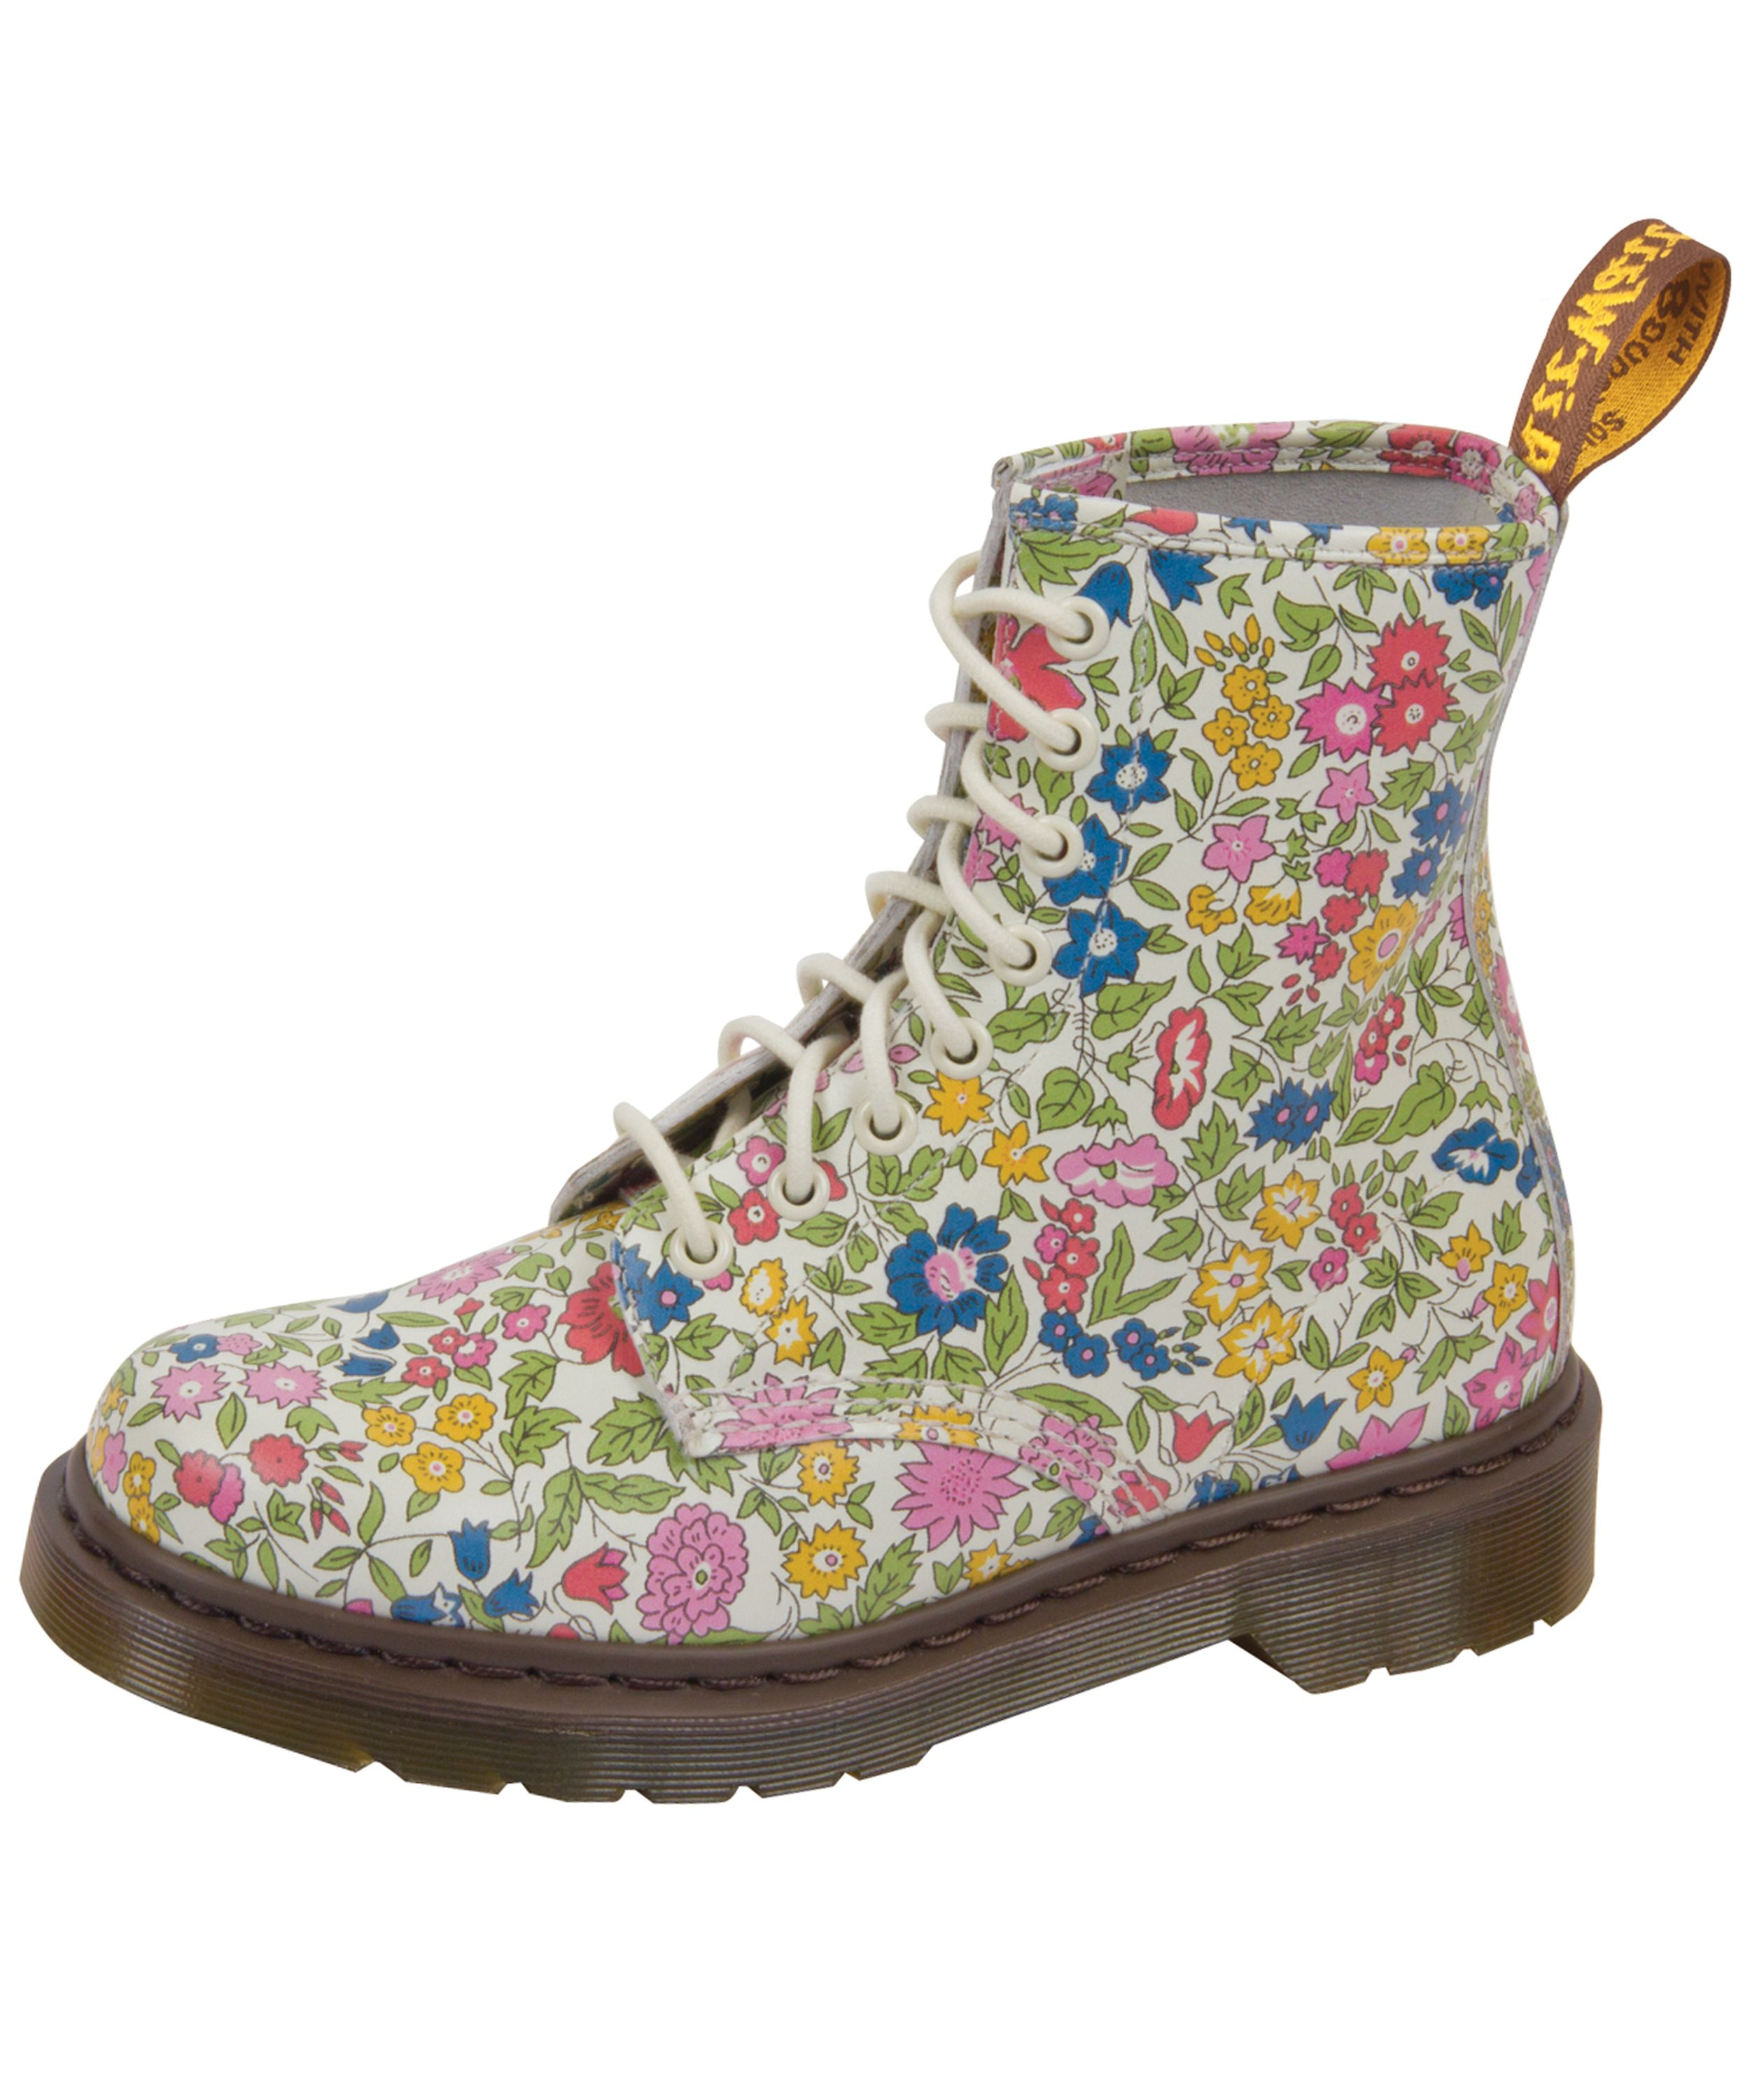 d25277fcfe4254 1460 £170.00 The Liberty London for Dr. Martens collection launches  exclusively here at Liberty on 1st May.